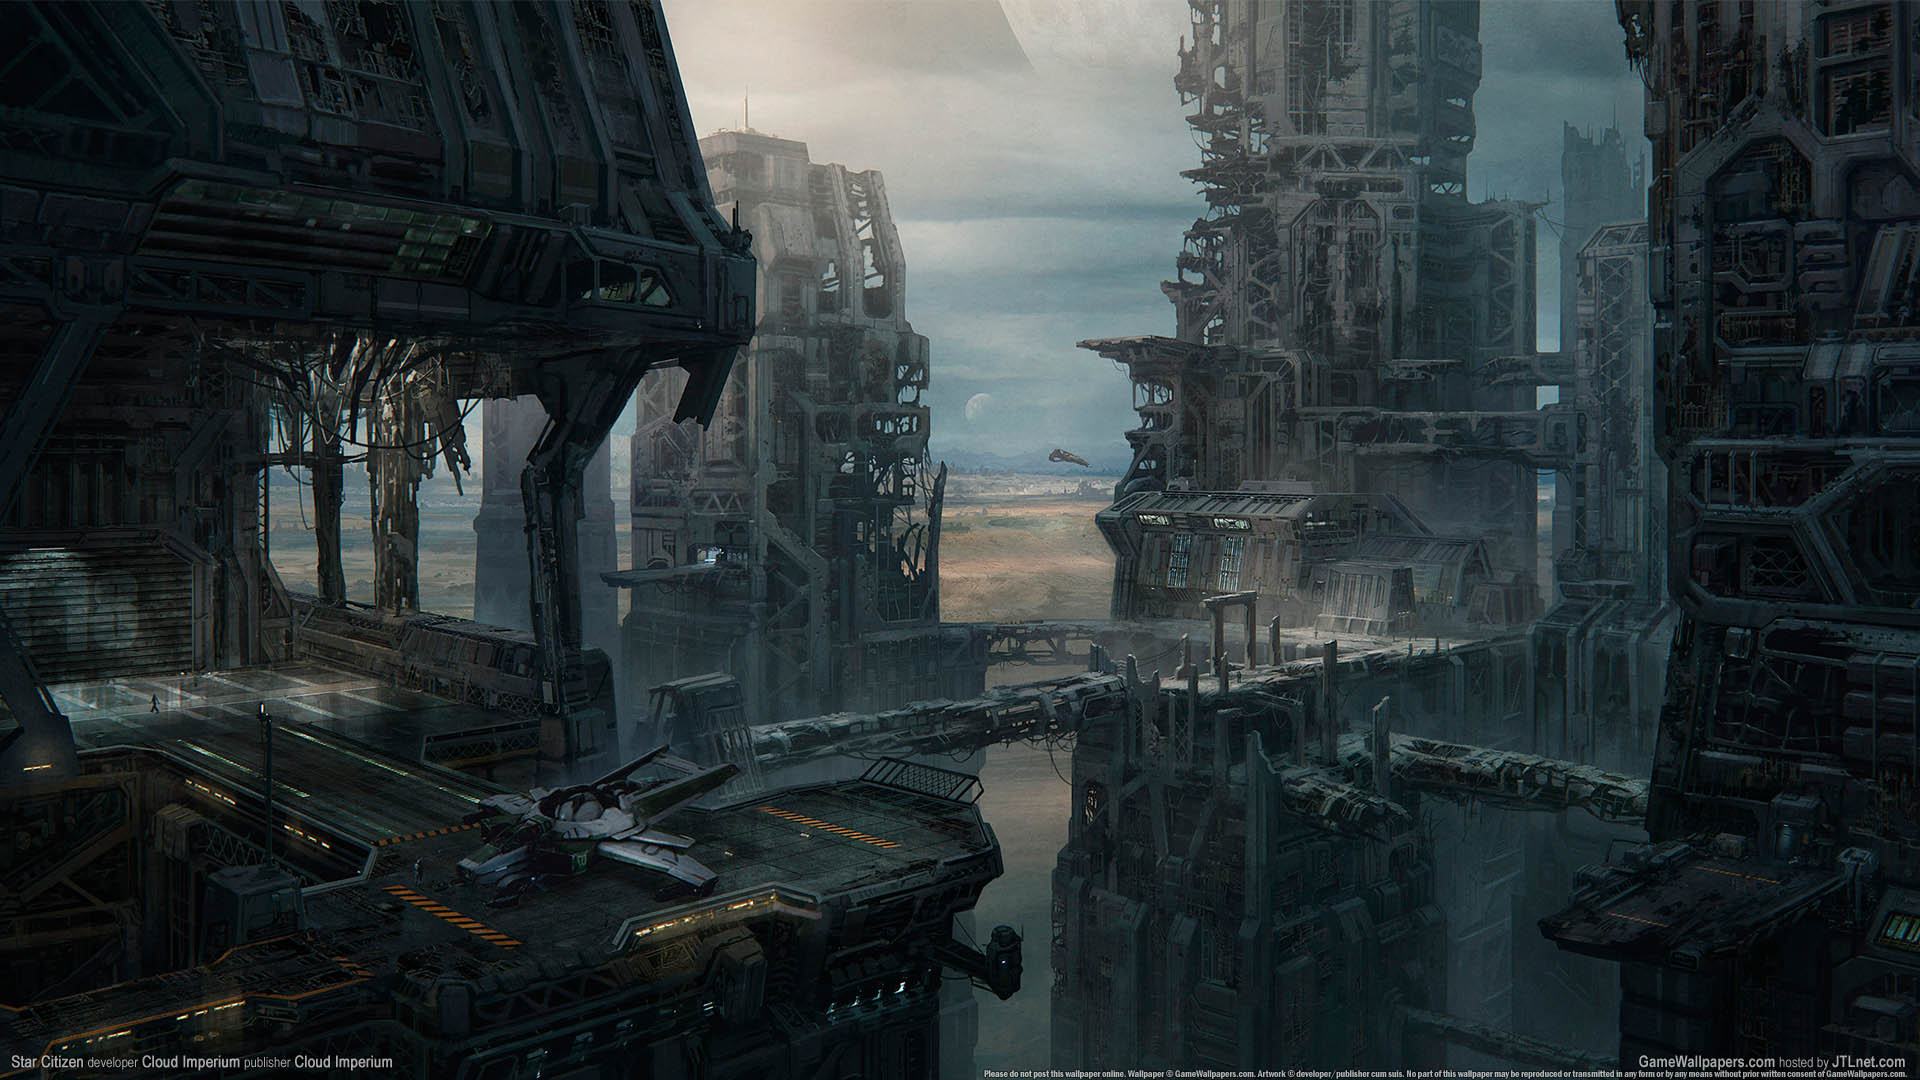 Star Citizen Wallpaper 1080p: Star Citizen Wallpaper 03 1920x1080